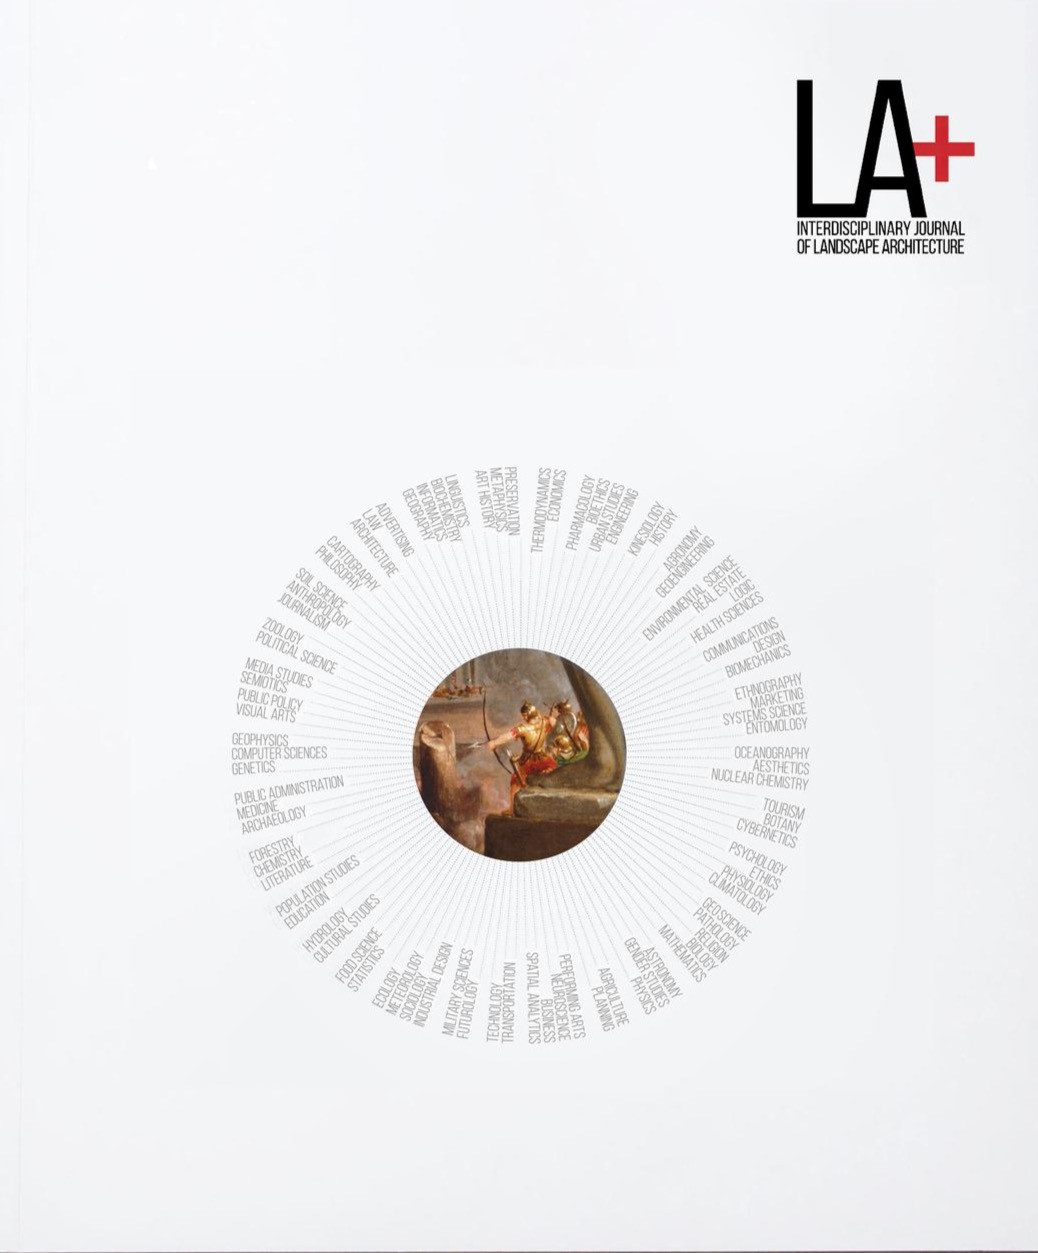 LA+ Journal of Landscape Architecture